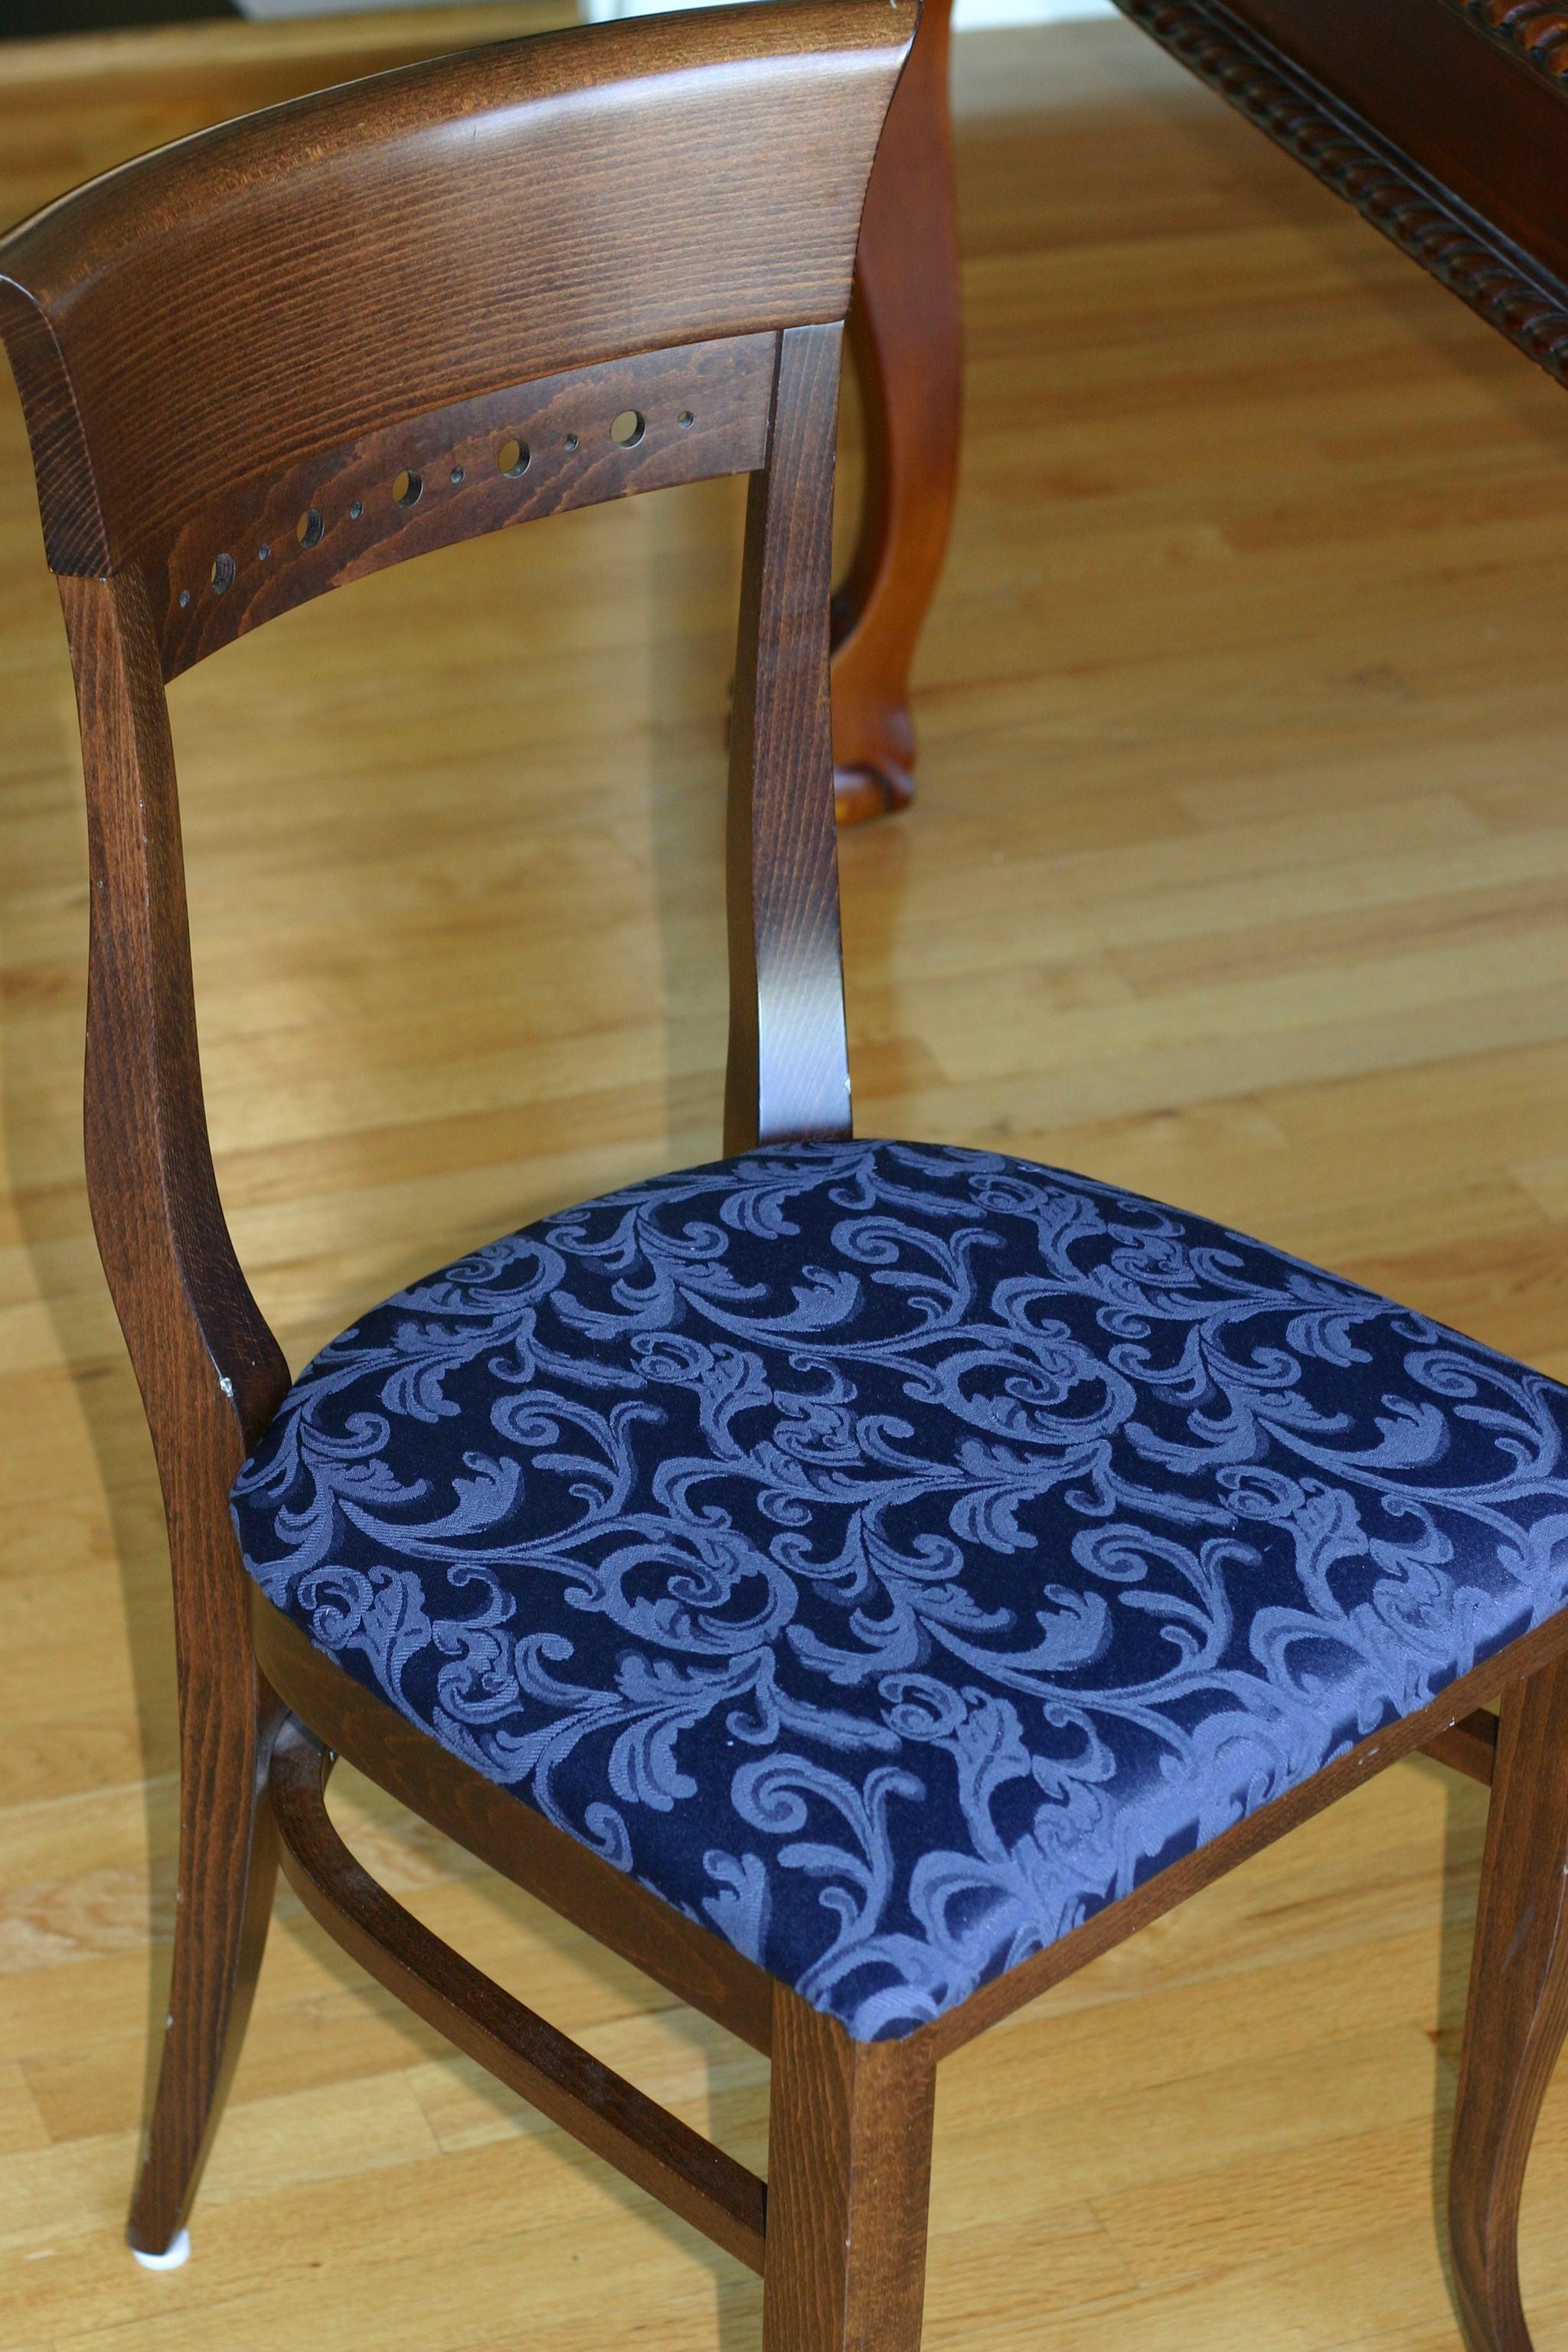 How to Re-Cover Chairs